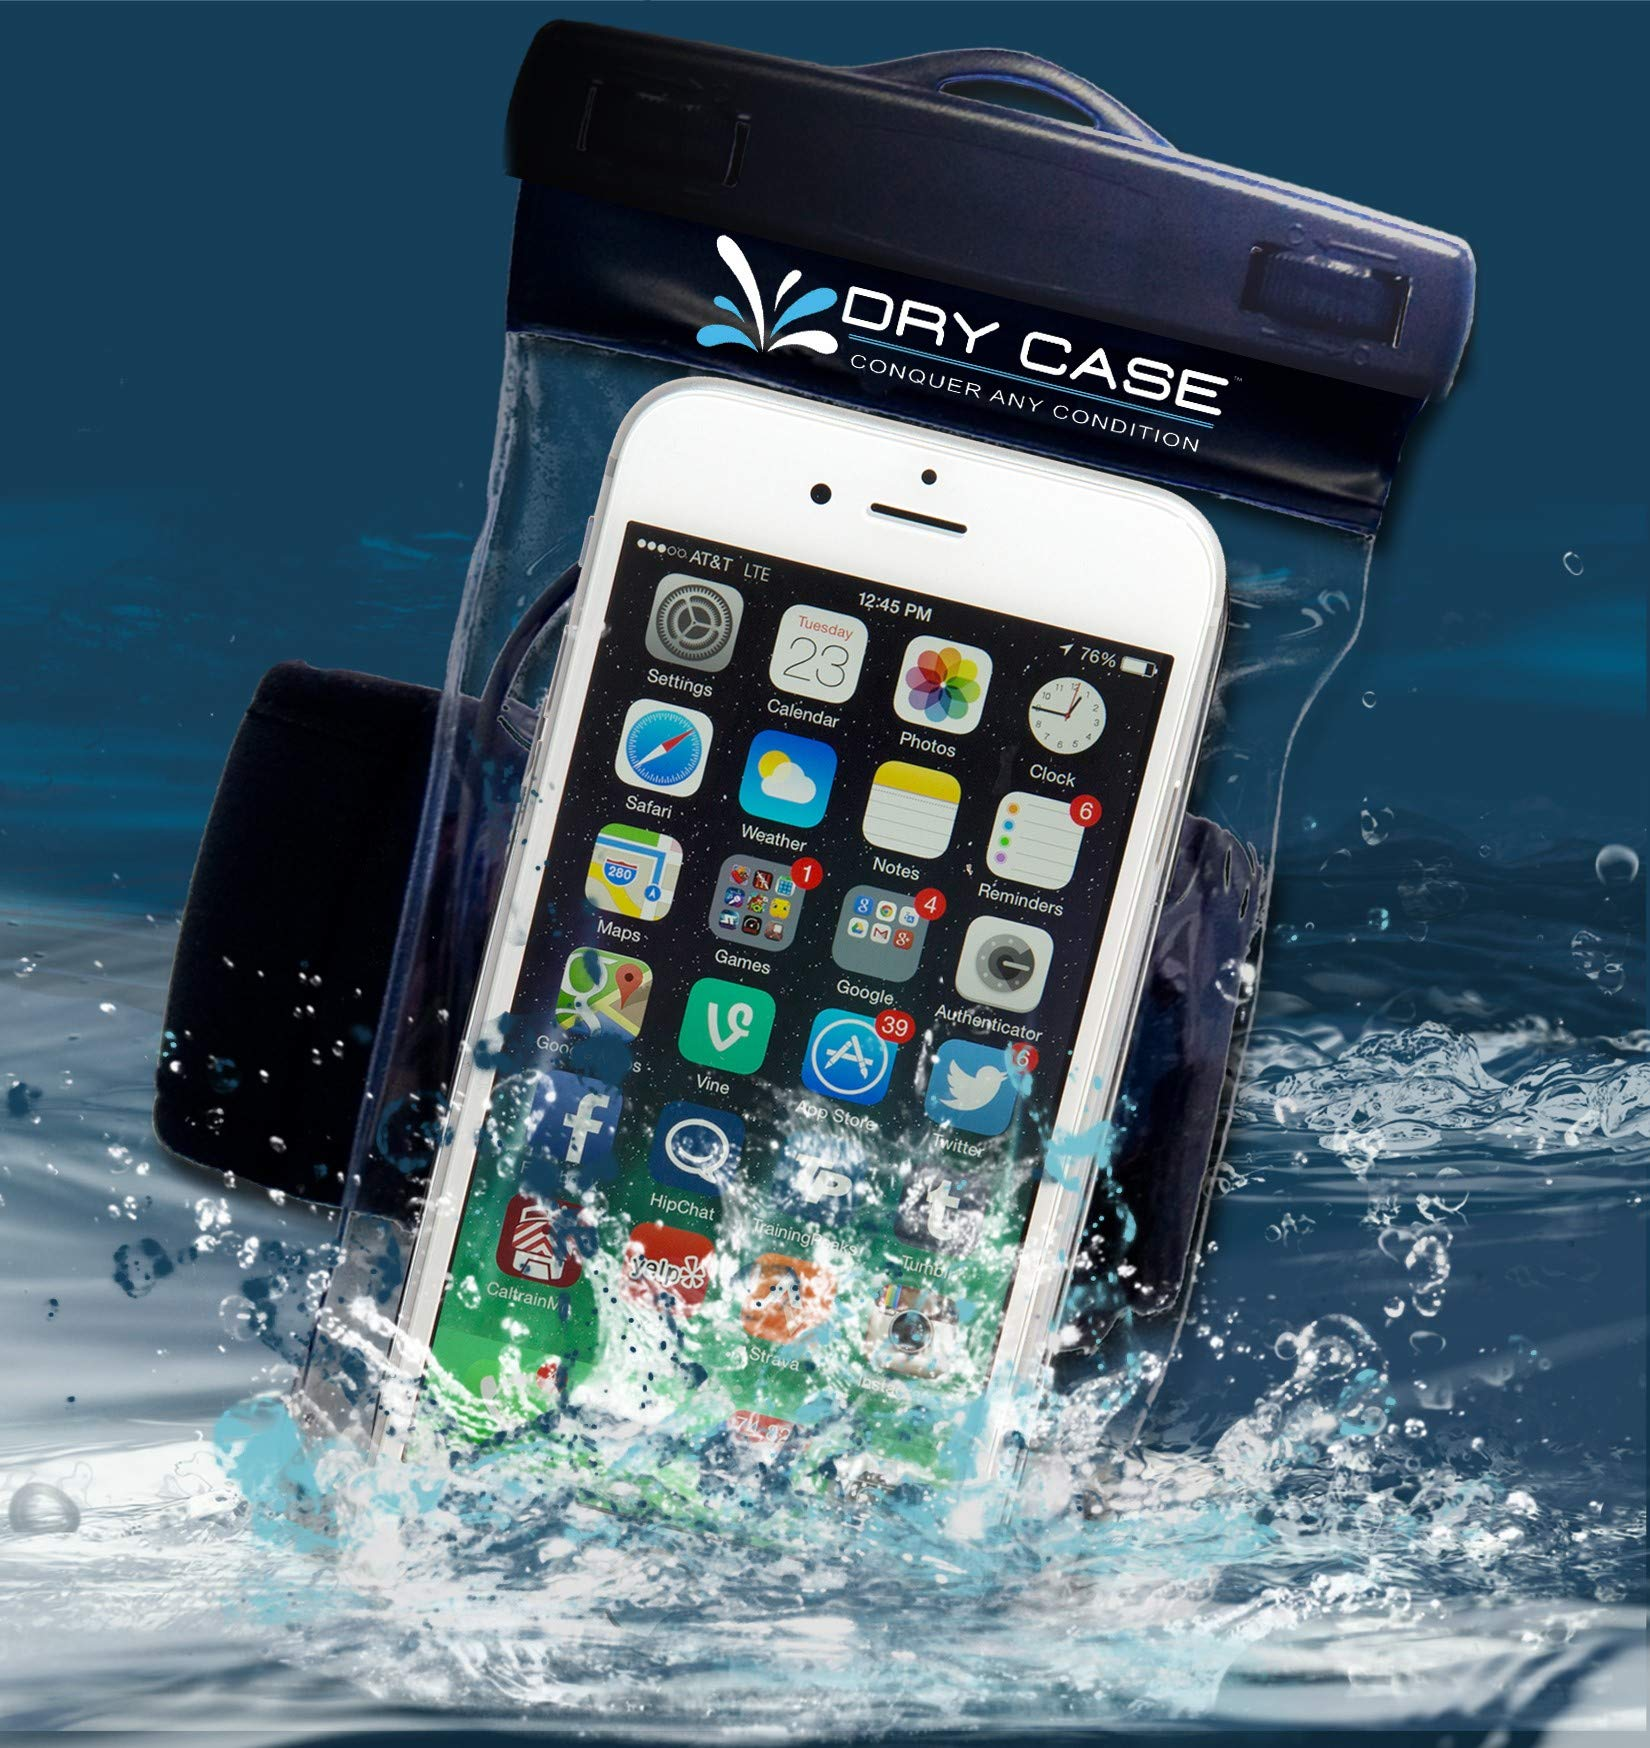 DRYCASE Waterproof Submersible Smartphone Case by Dry CASE